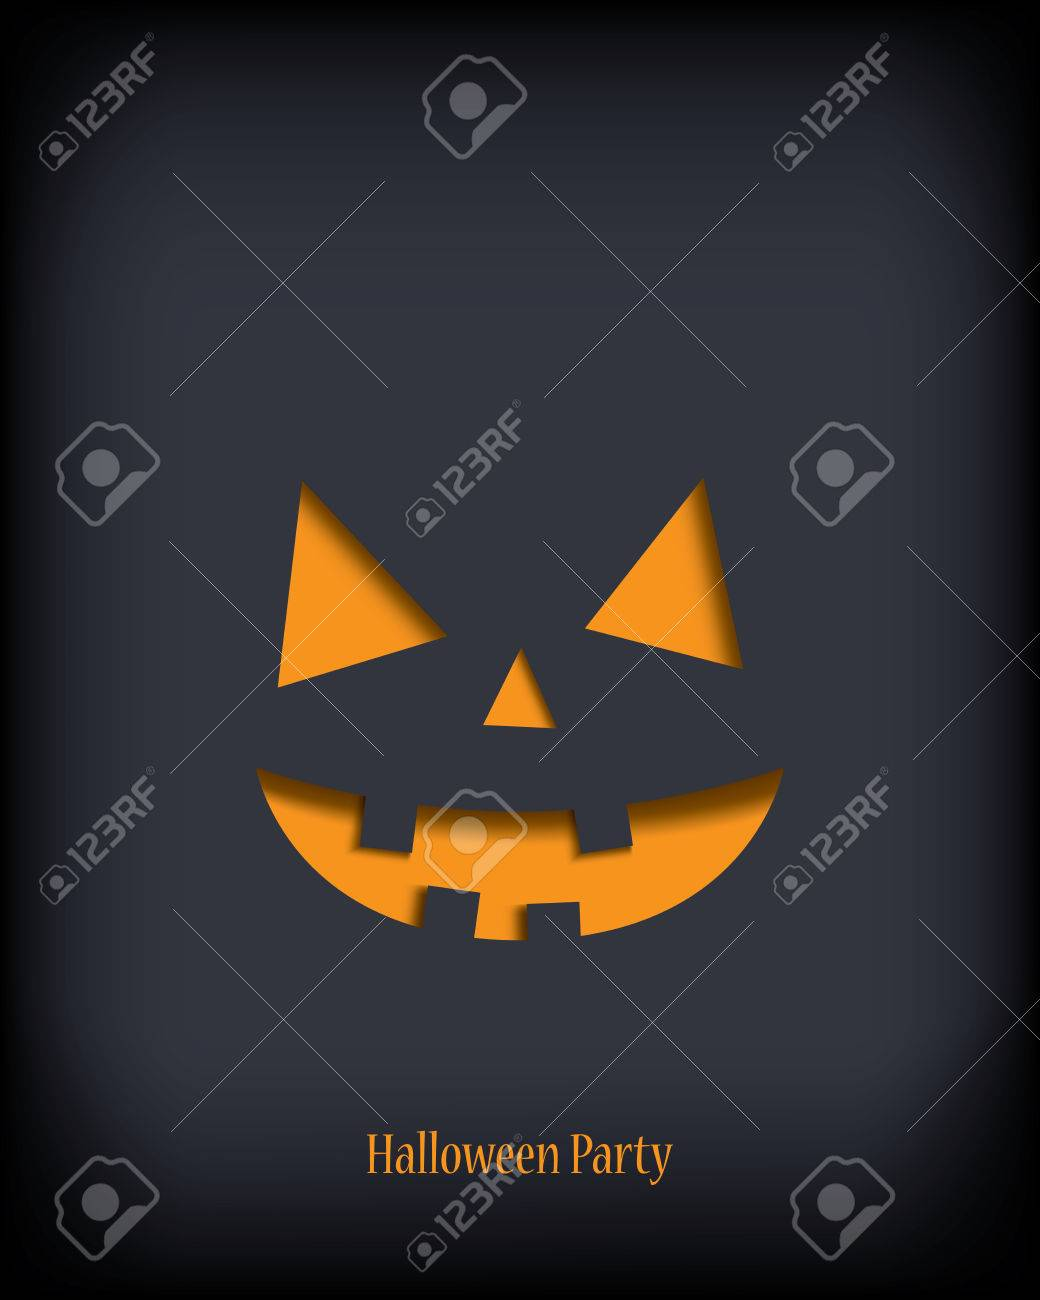 Halloween Illustration Vector Suitable For Party Invitations ...